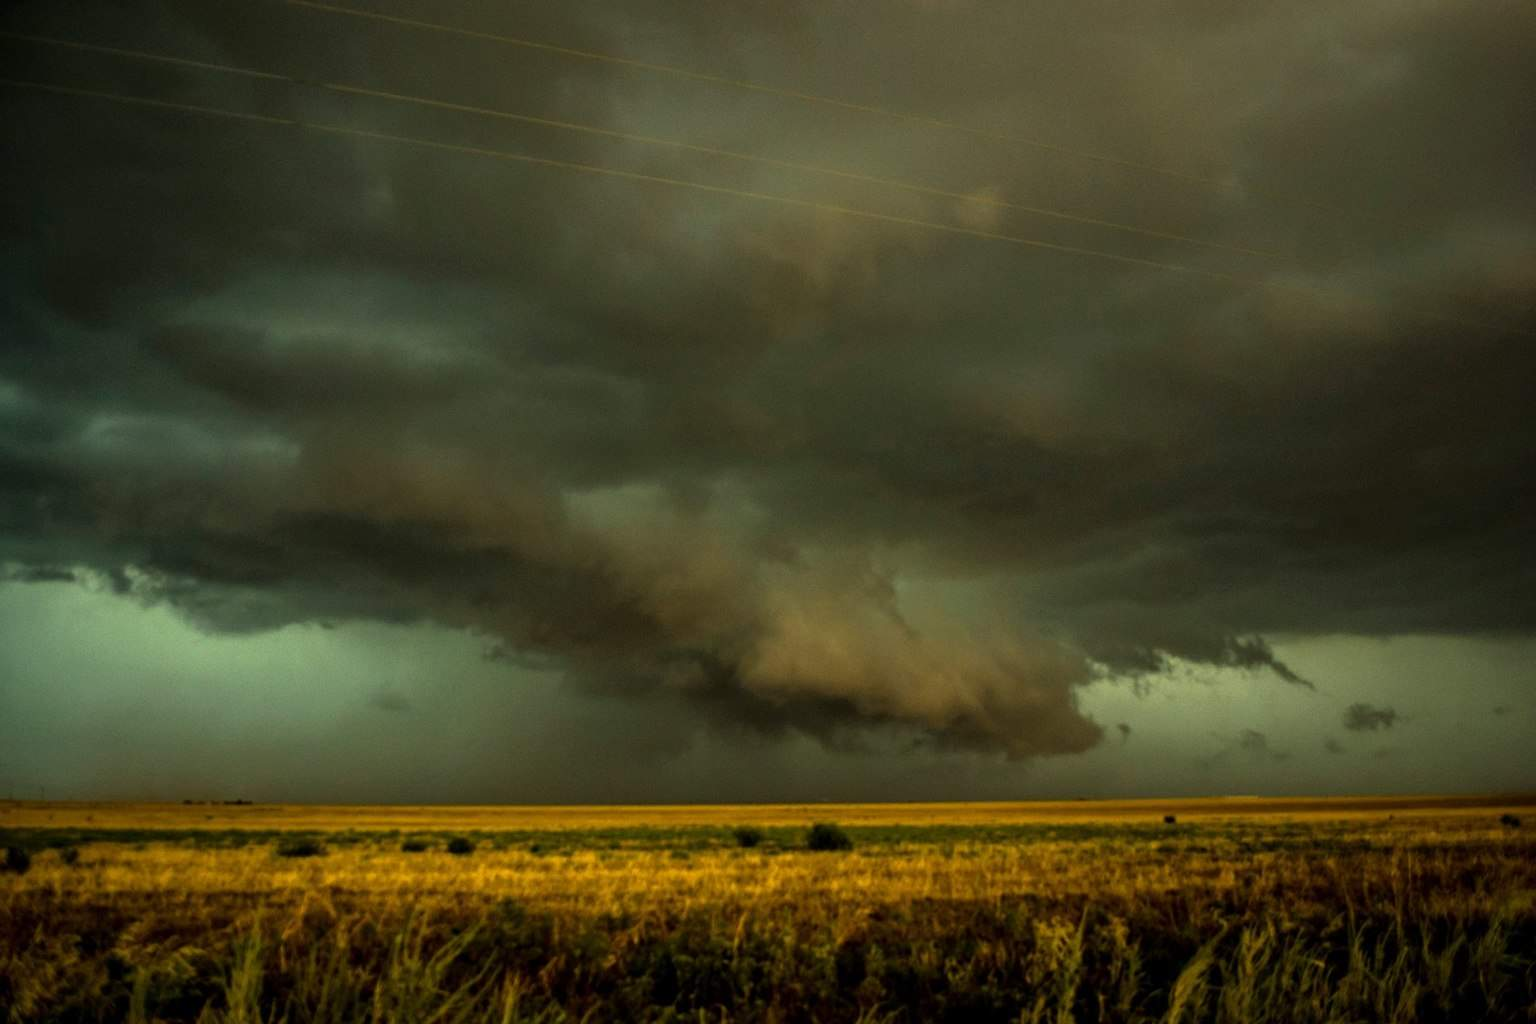 Wall Cloud Duke OK.. SW OK has to be one of my favorite places to chase in the world. Its just one of those areas that can so often be magical.